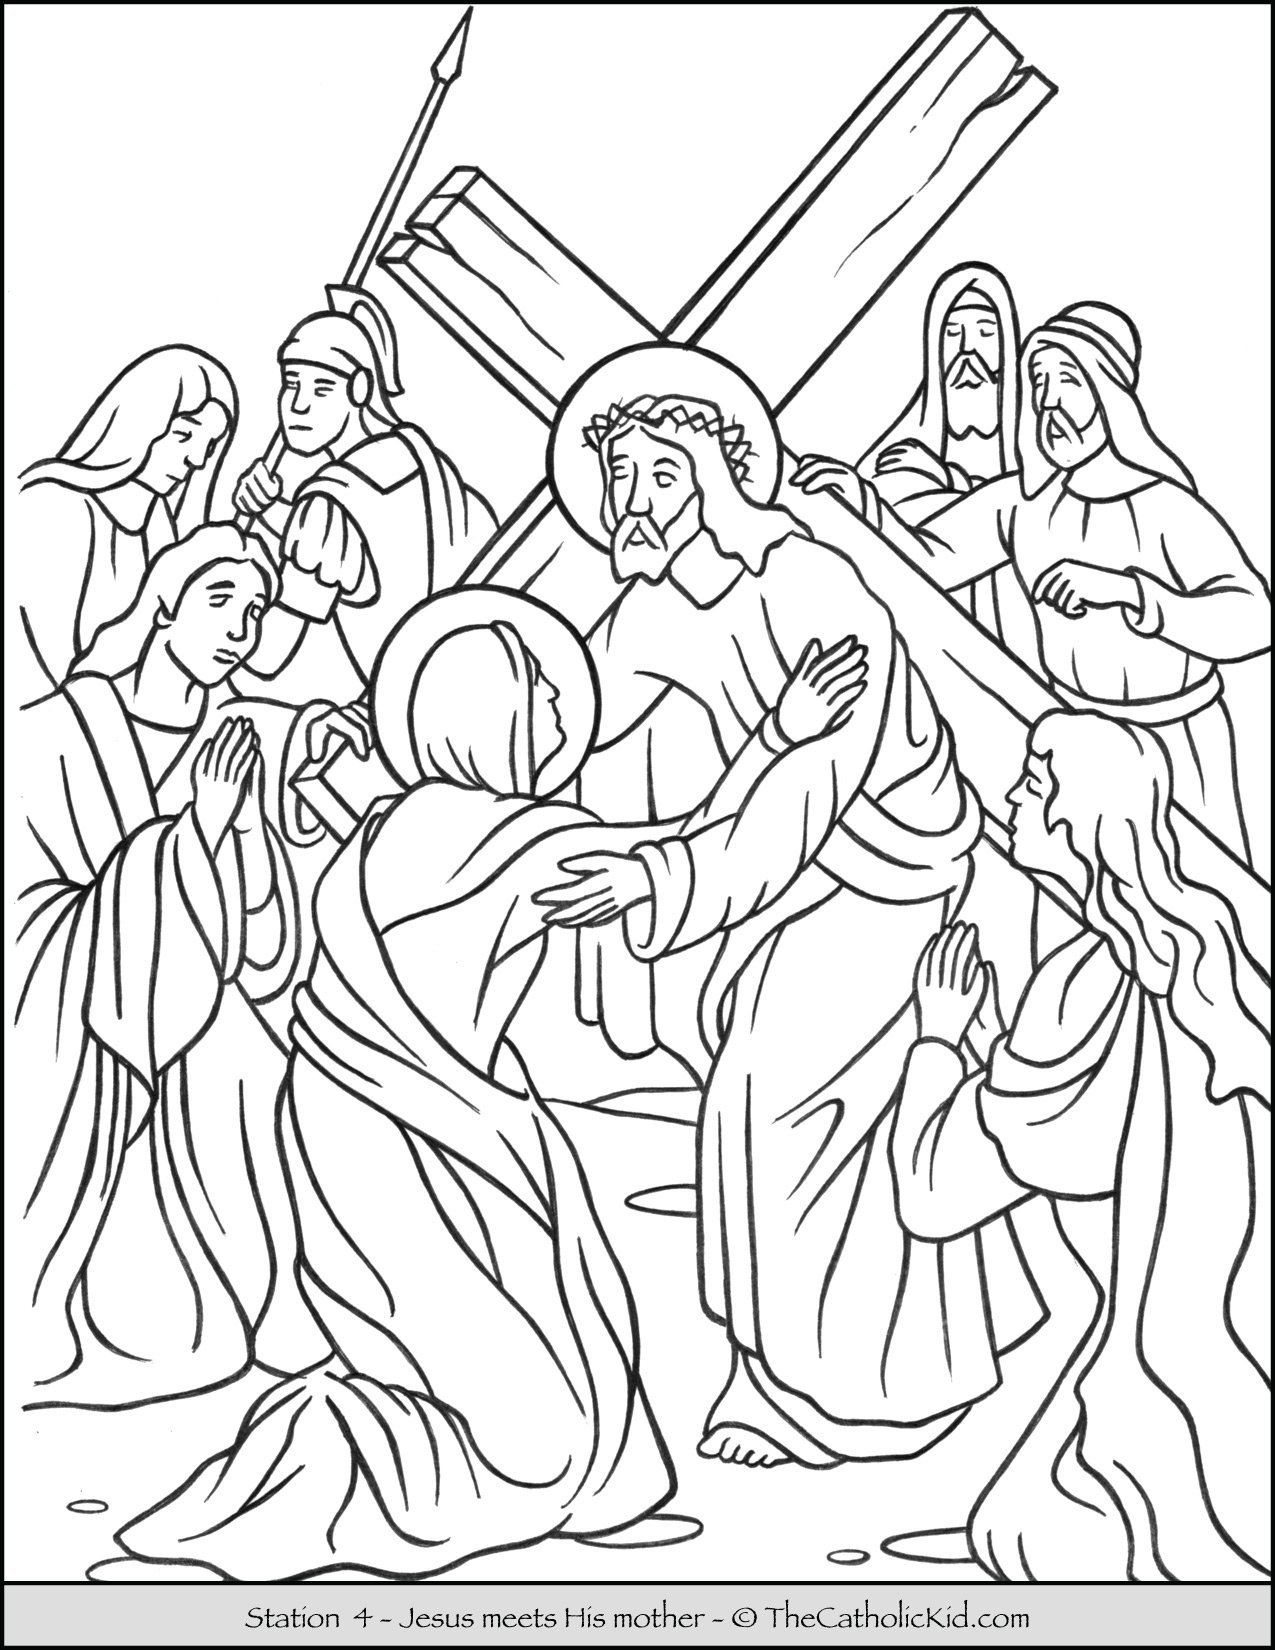 Stations of the Cross Catholic Coloring Pages for Kids 4